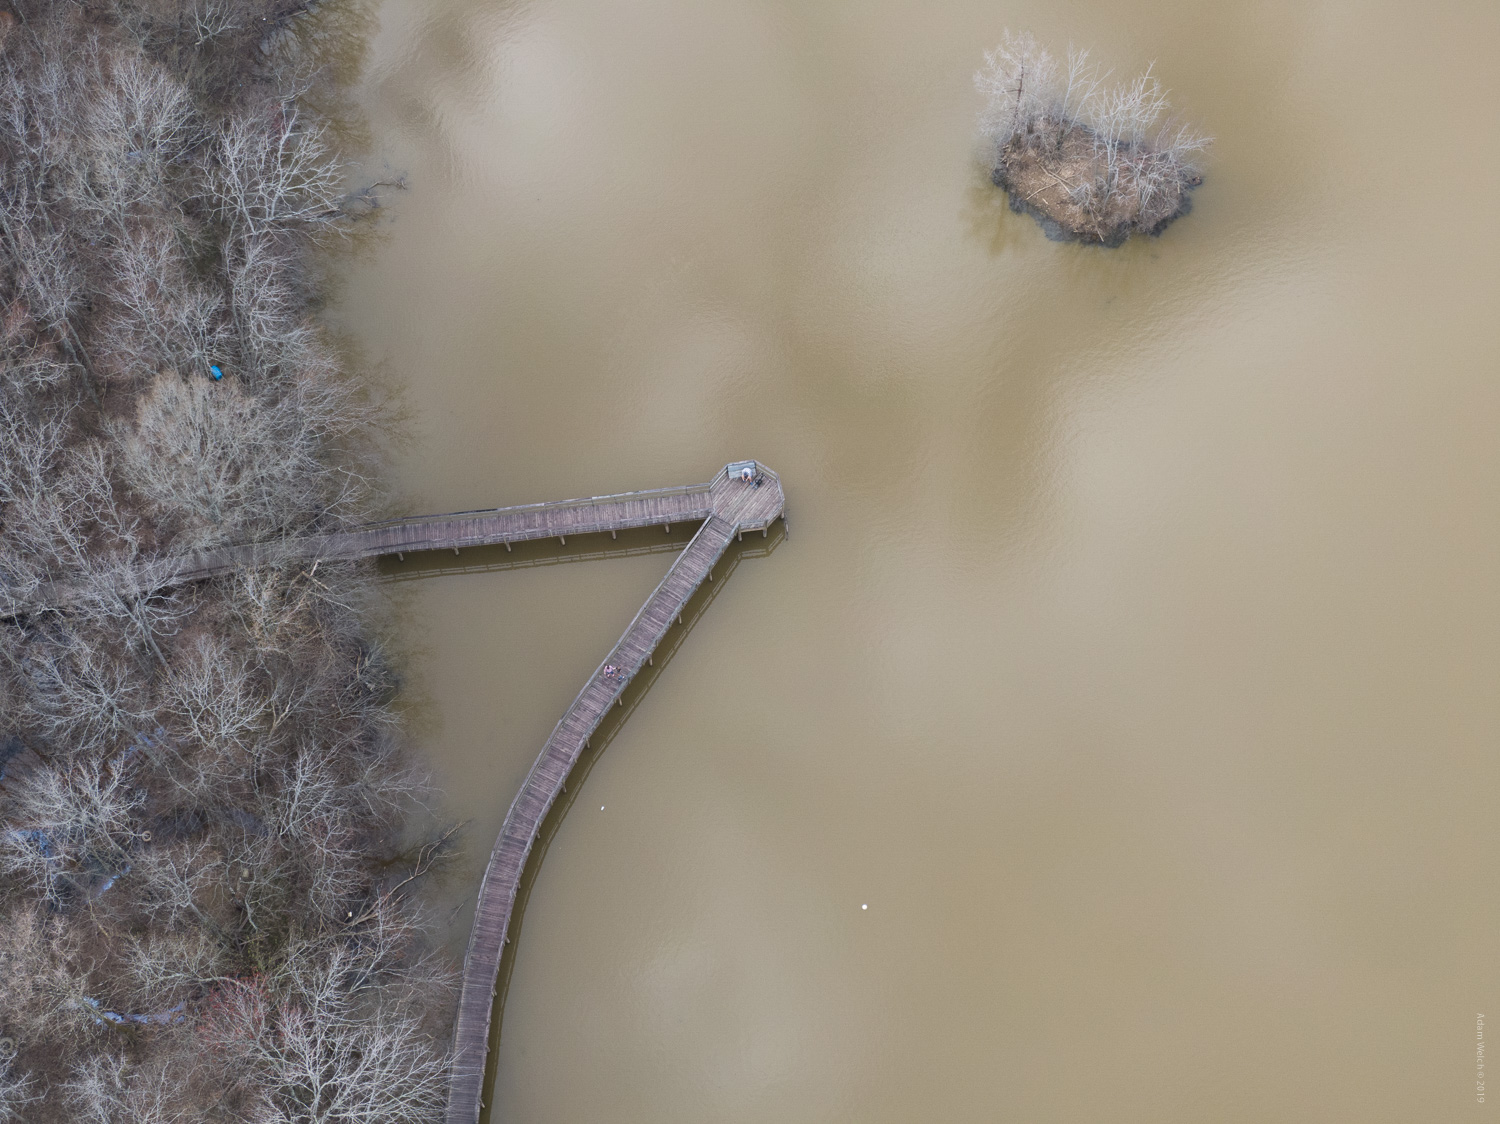 dji-mavic-2-zoom-digital-photography-school-adam-welch